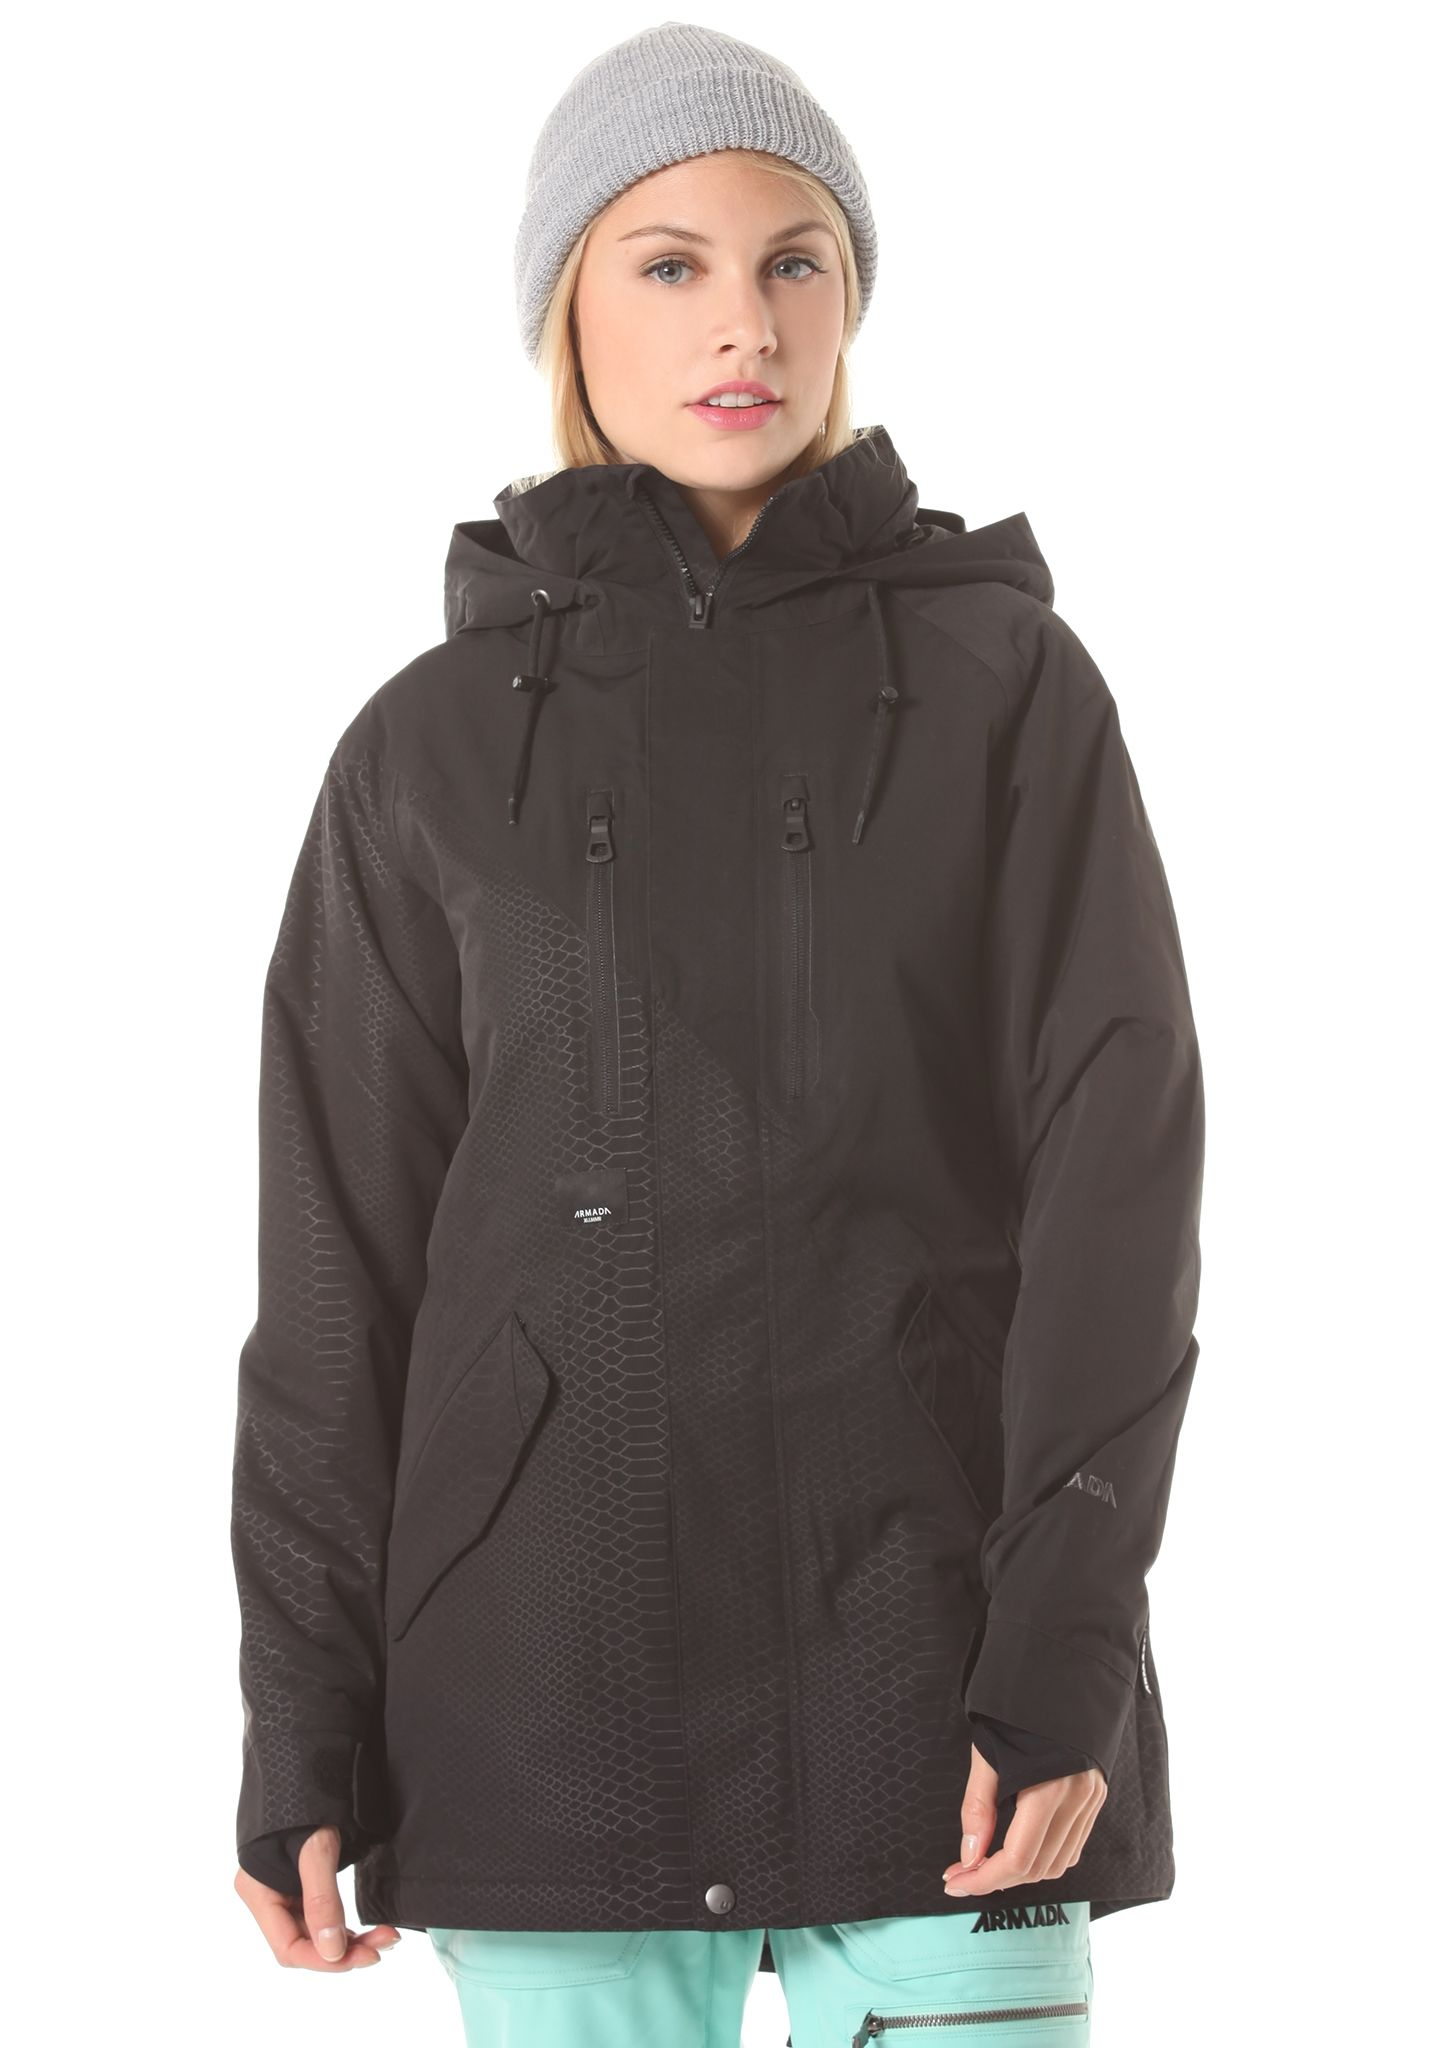 b40c91389e ARMADA Stadium Insulated - Snowboard Jacket for Women - Black - Planet  Sports